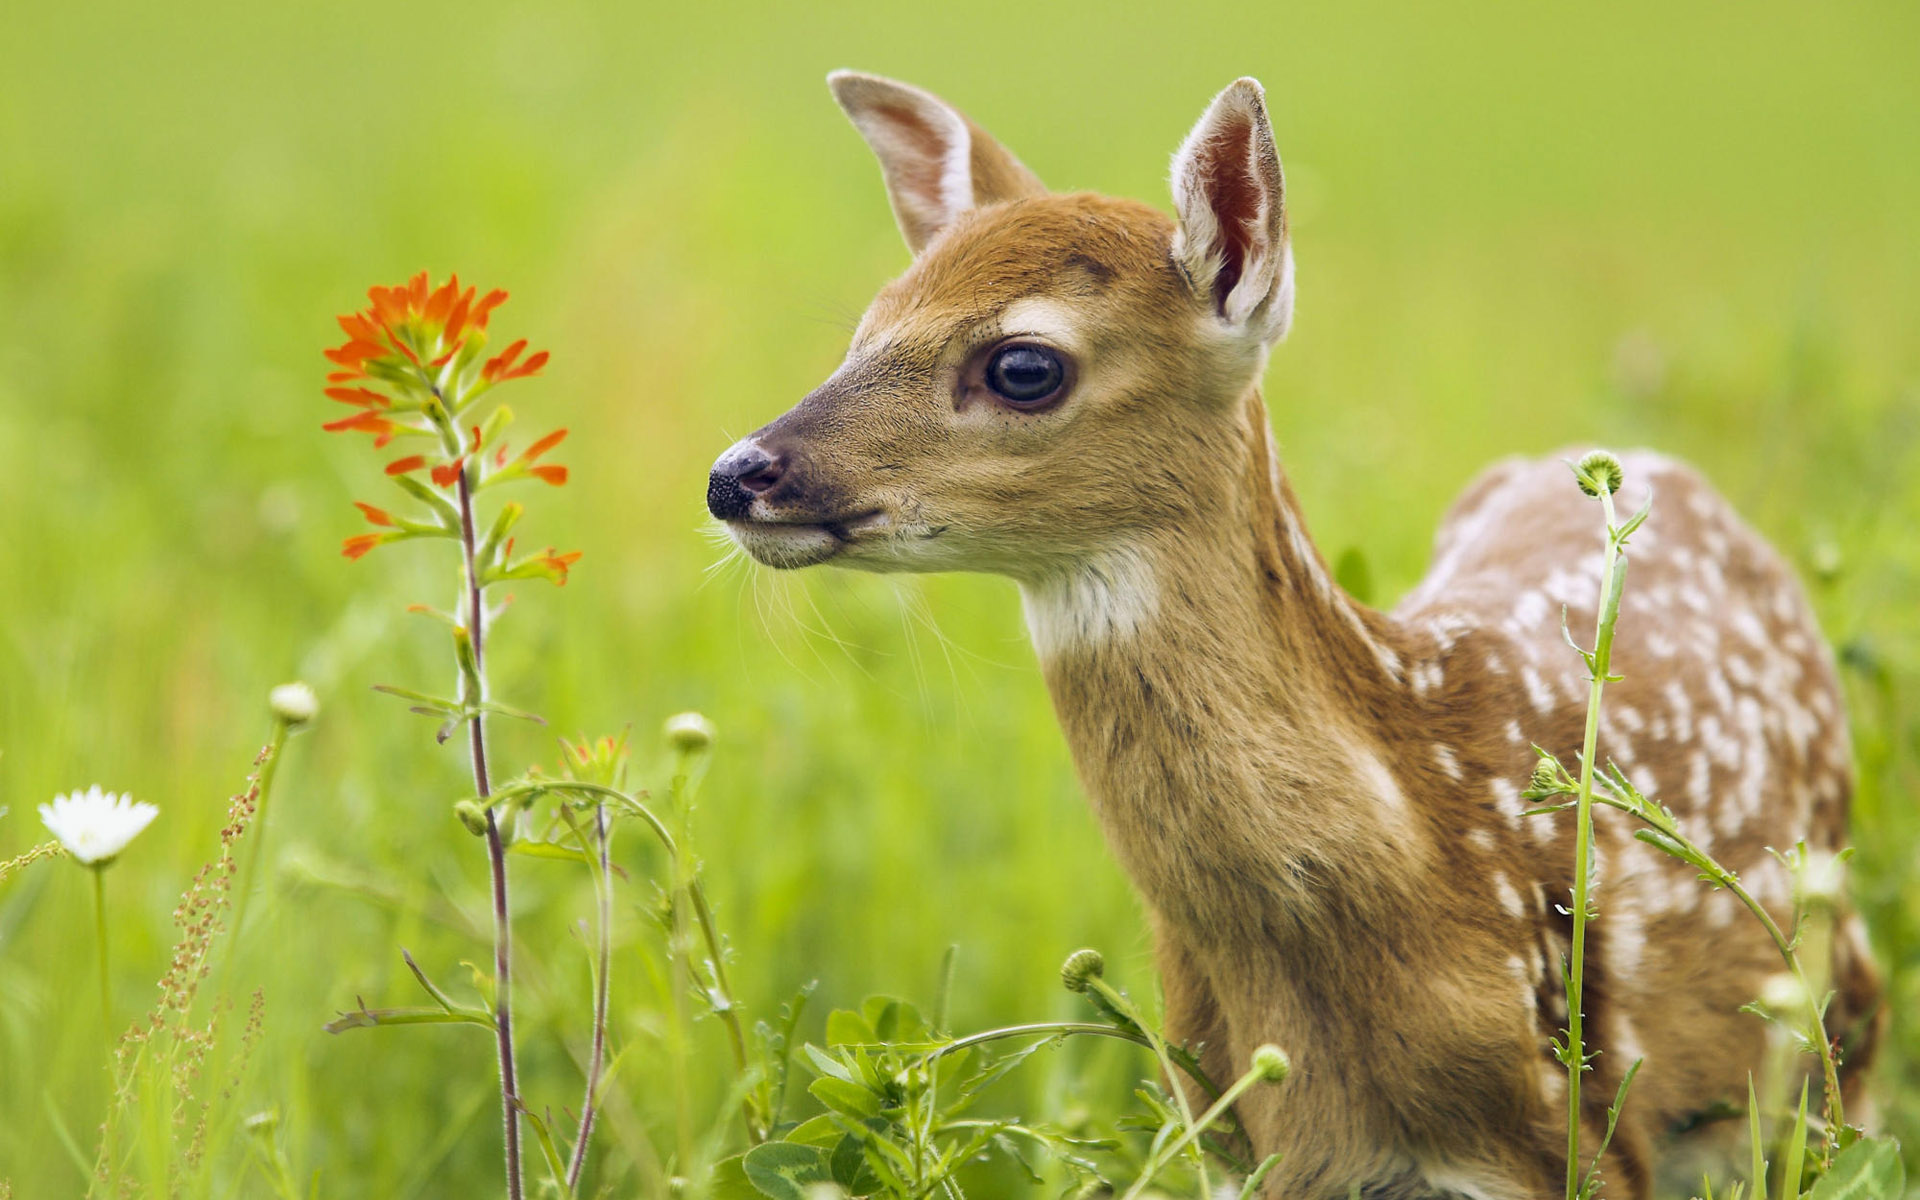 New Amazing Deer hd Animal Wallpaper Wallpaper